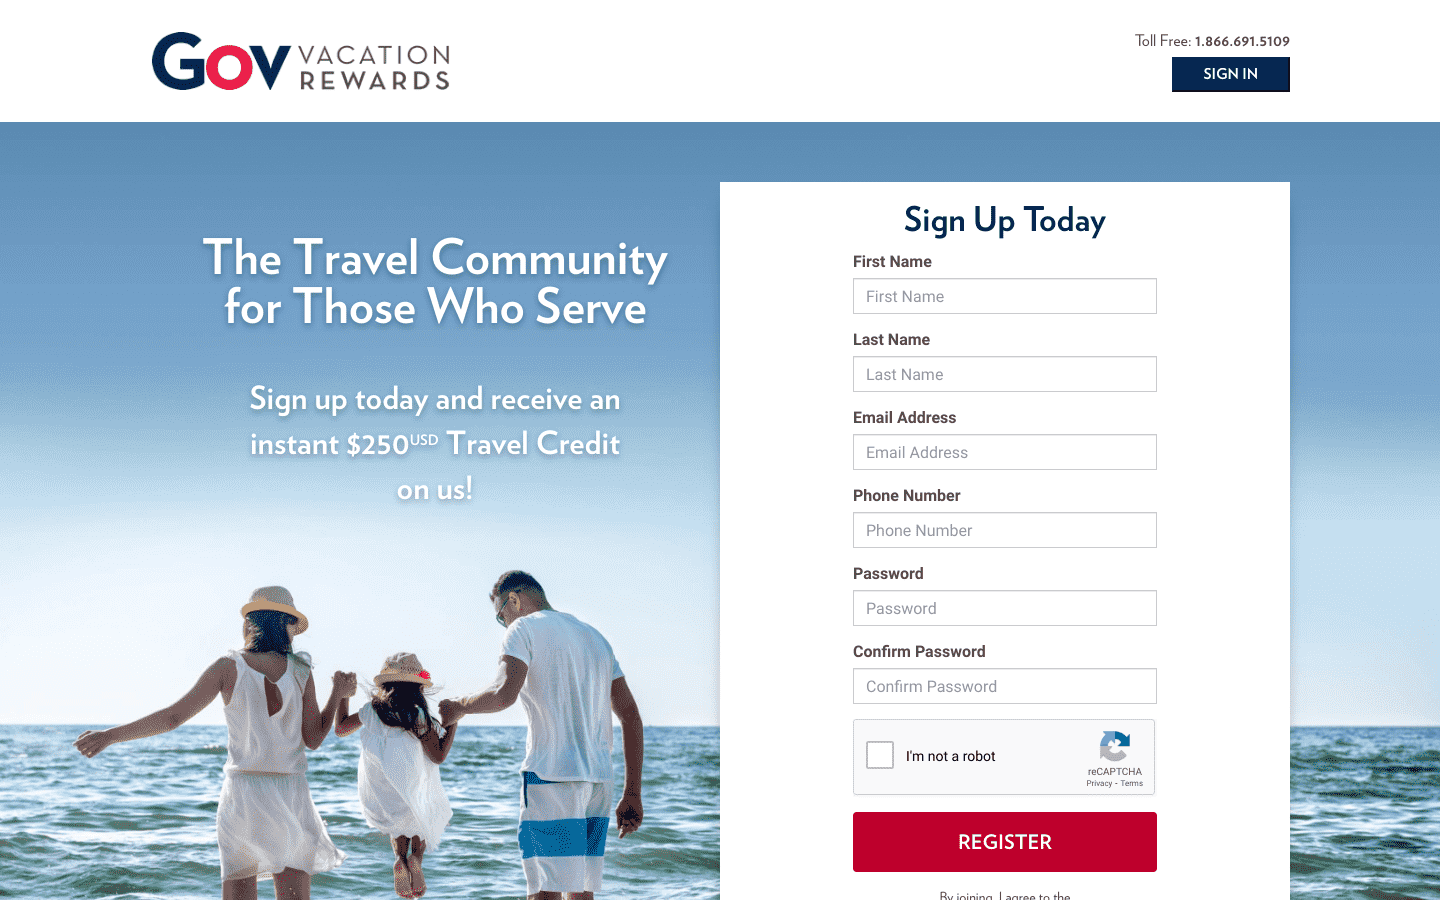 Government Vacation Rewards reviews and complaints